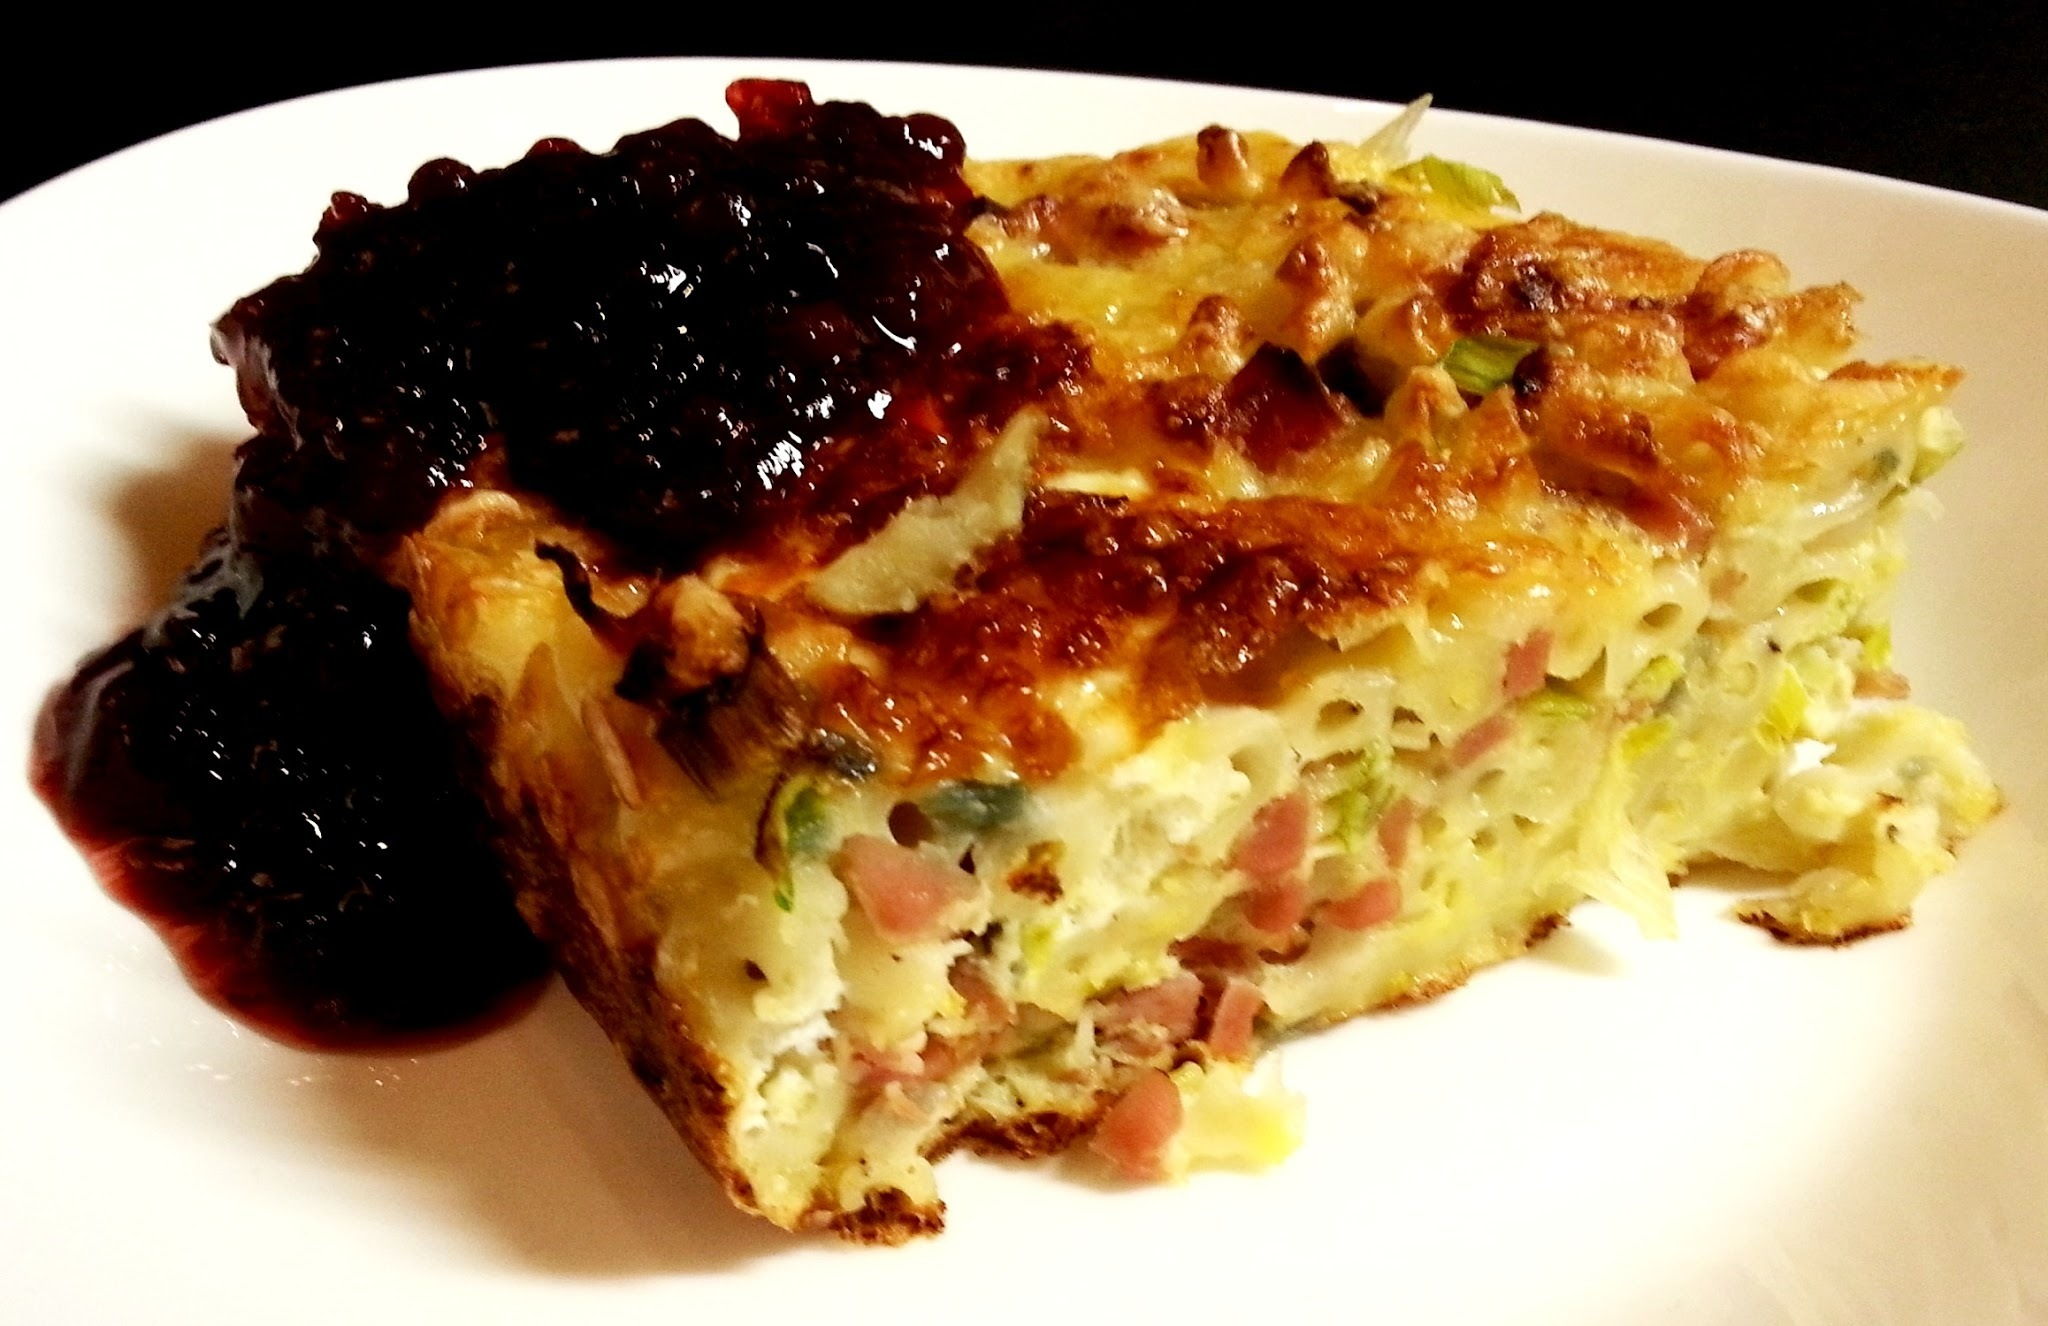 Makaronipudding med Lantkorv & Bacon - Recept